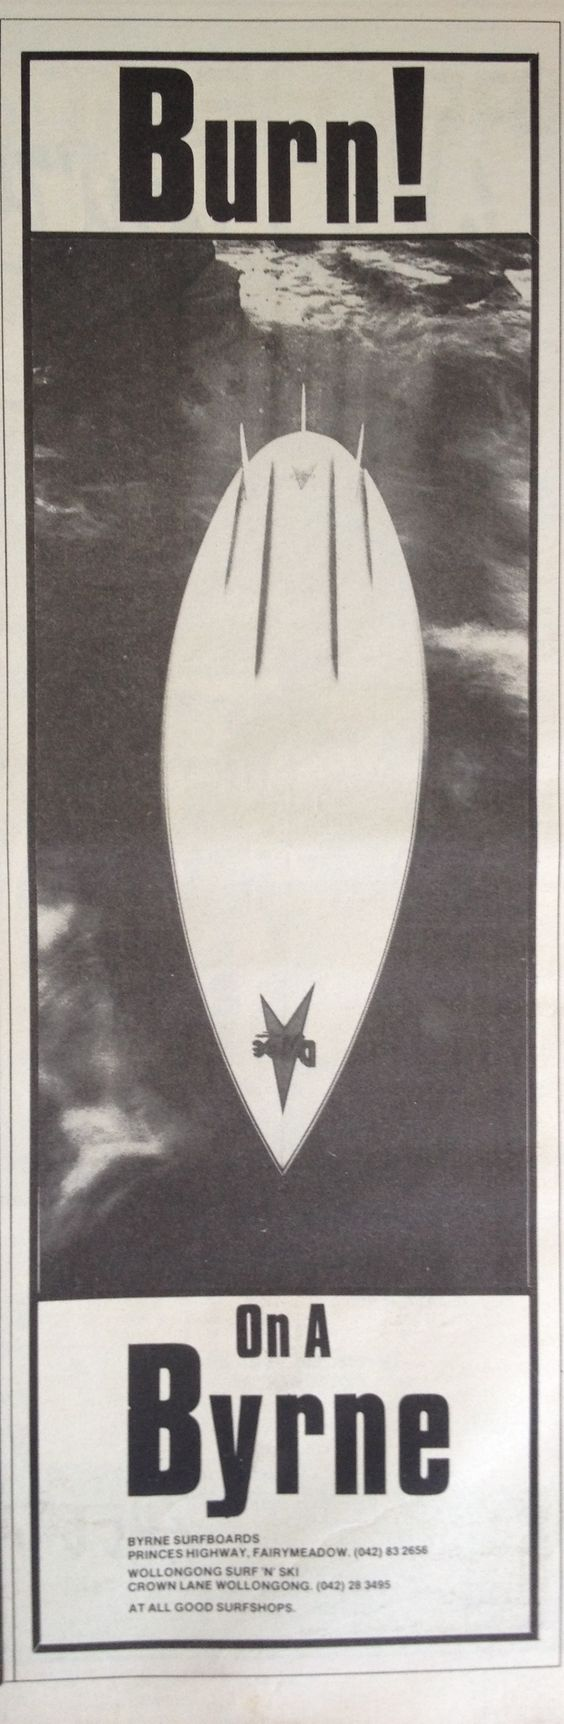 Burn! on a Byrne - Byrne surfboards advertisement in Tracks magazine 1981 - Early thruster channel bottom surfboard. Right at the time when surfing was taking its biggest turn thanks to the success of Simon Anderson's 3 fin thruster design.